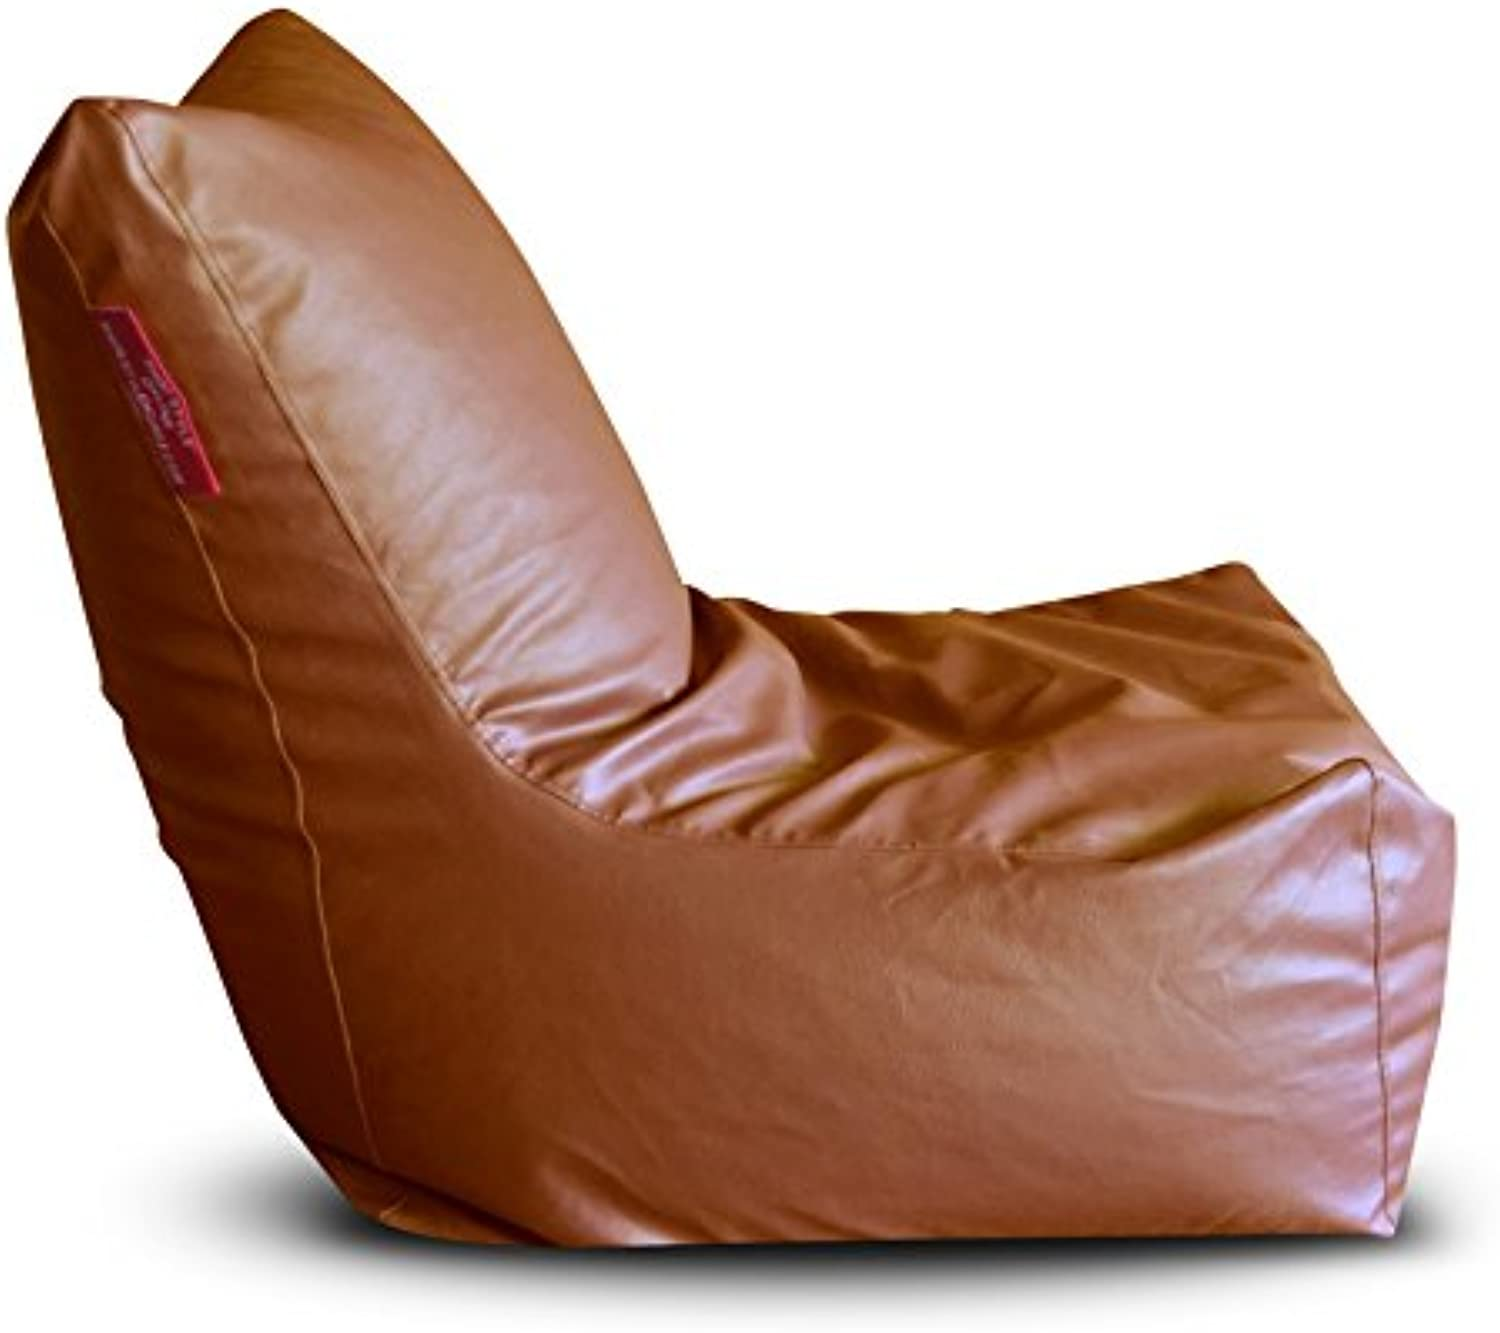 Style Homez Premium Leatherette XXL Bean Bag Chair Tan color, Cover Only